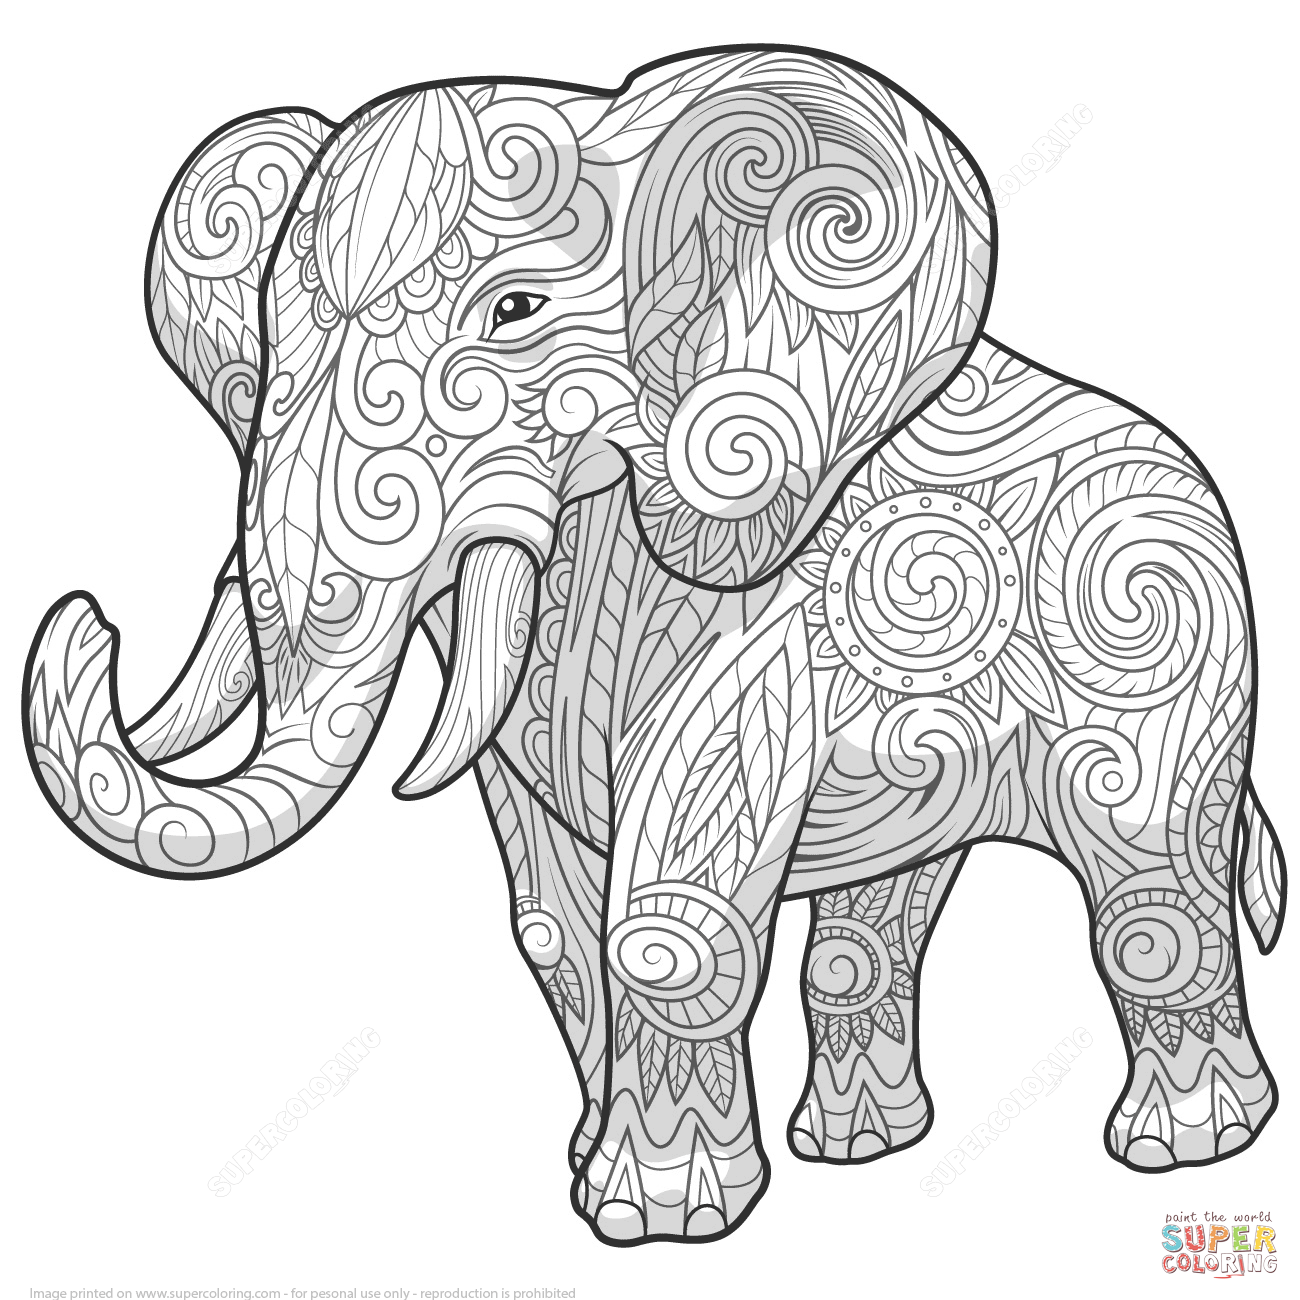 free zentangle coloring pages free to download zentangle swan coloring pages coloring free zentangle coloring pages